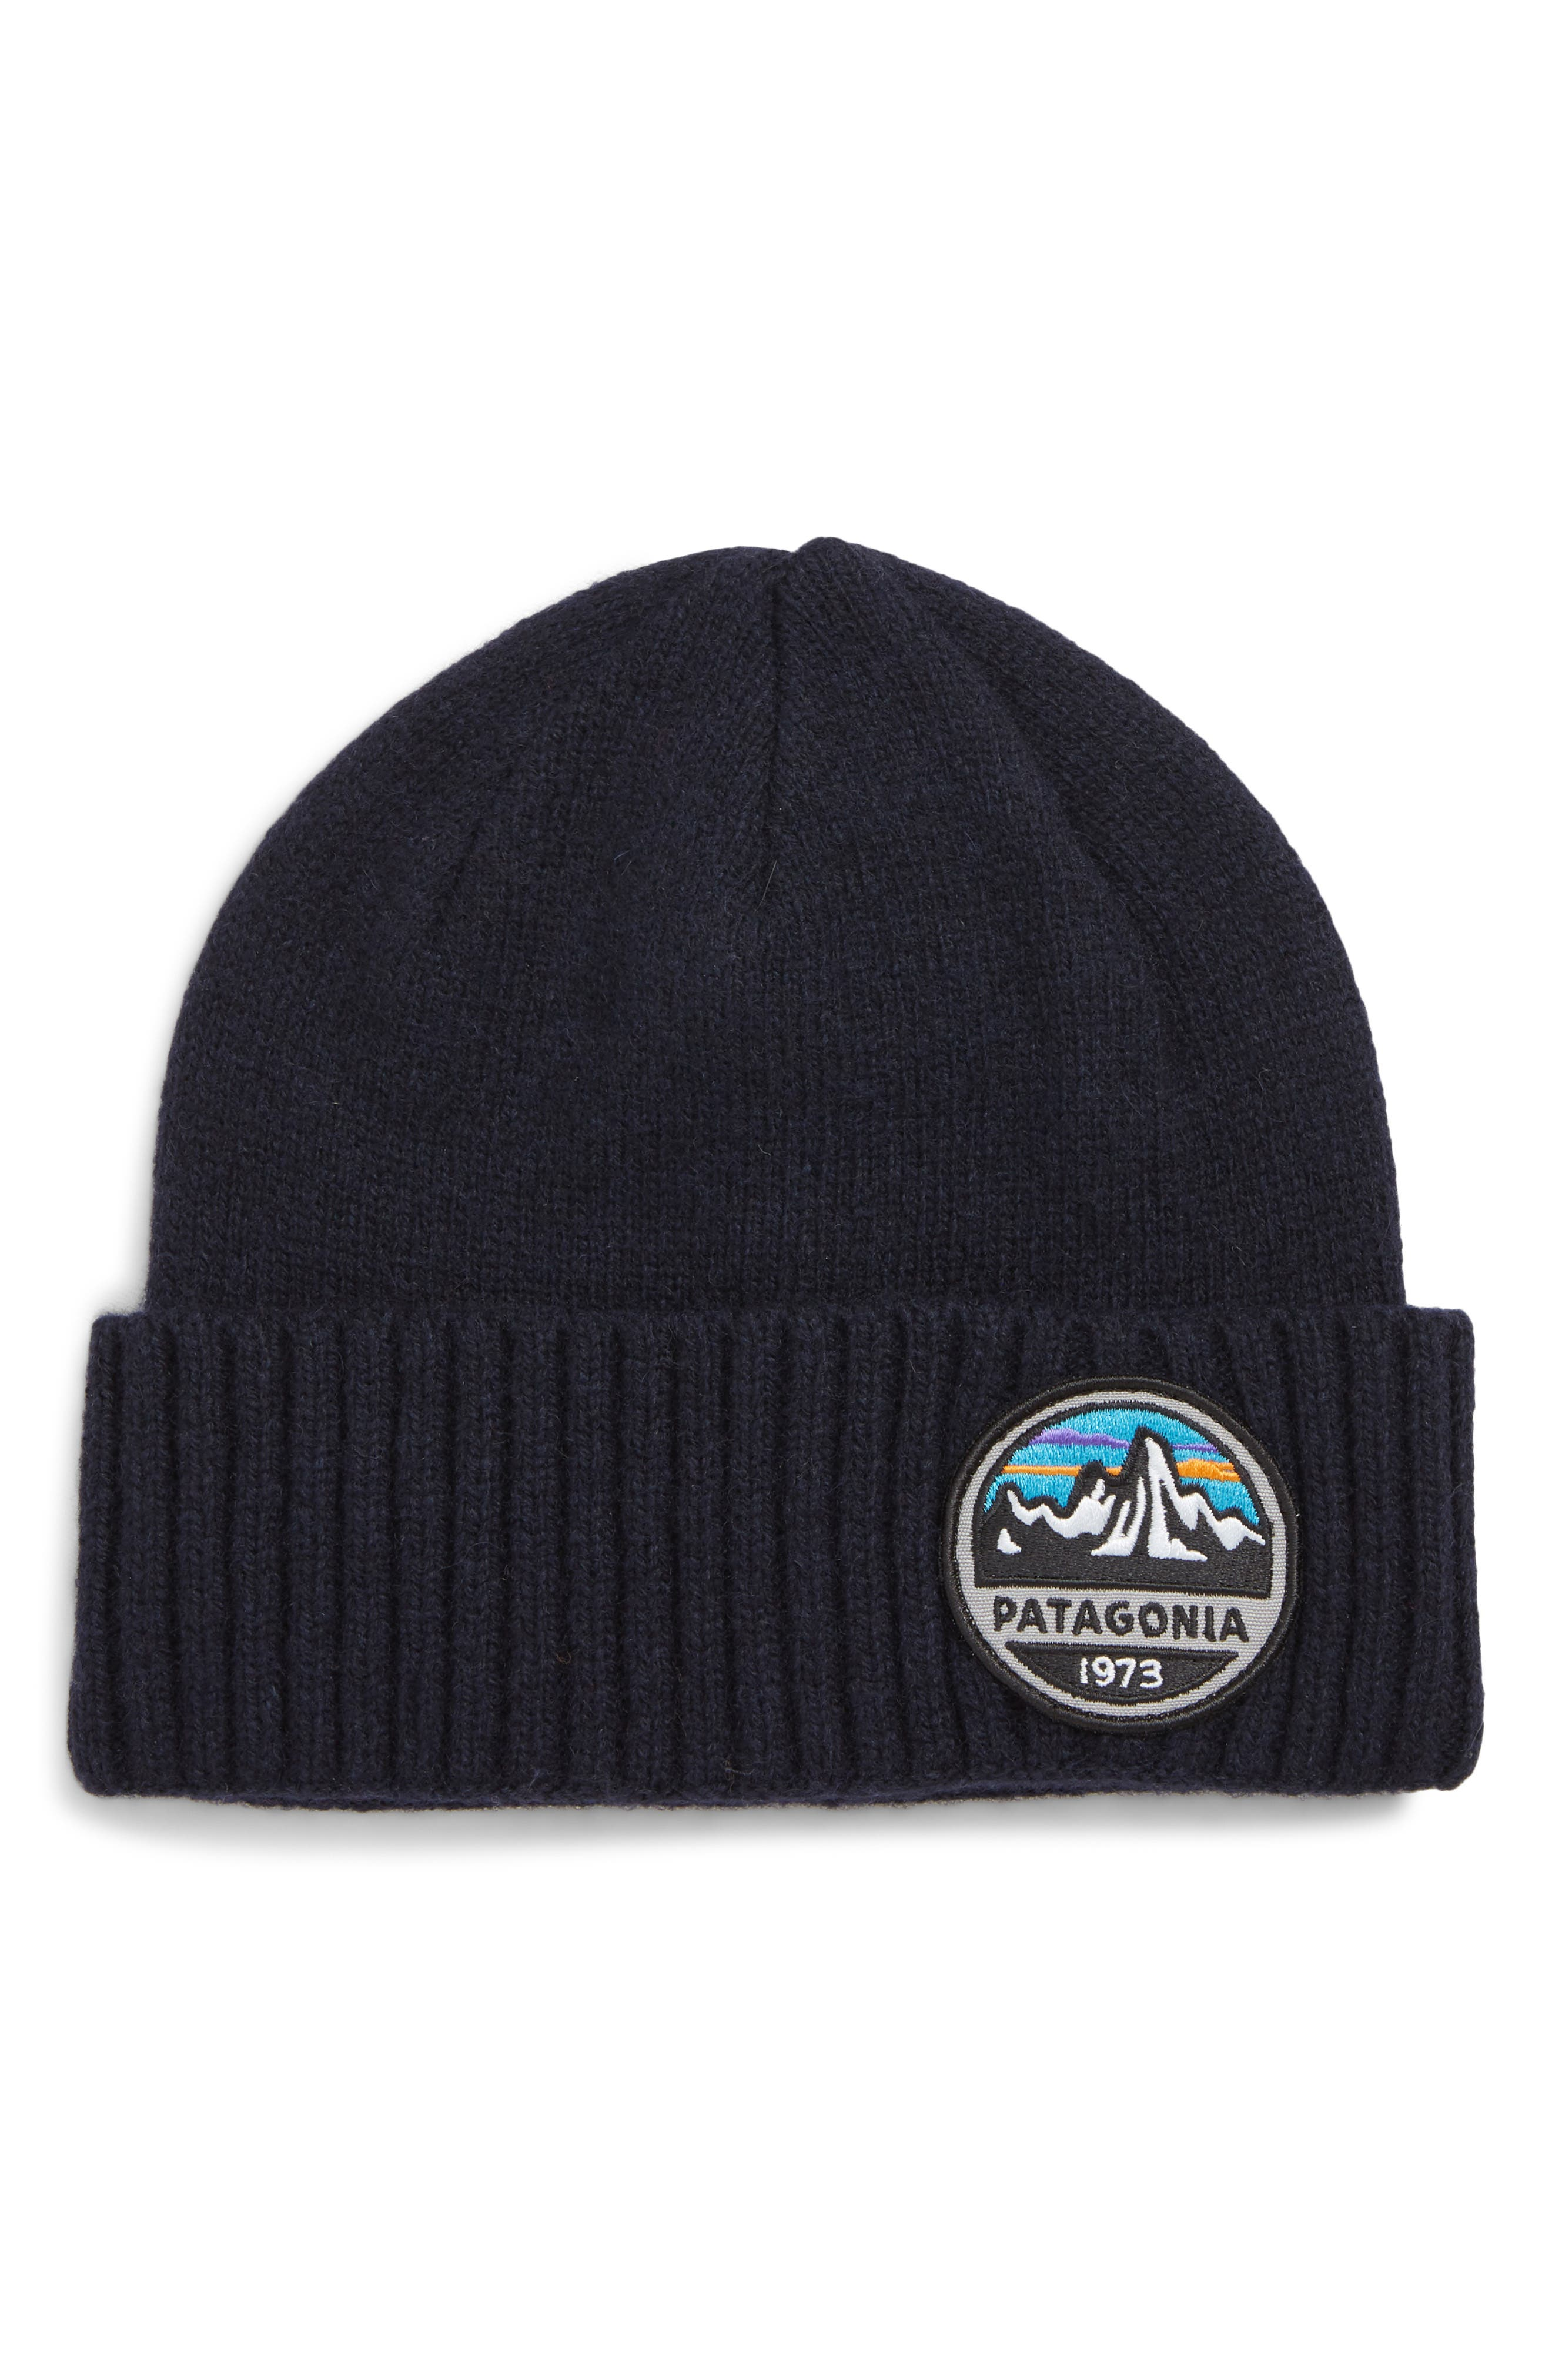 Brodeo Wool Stocking Cap,                             Main thumbnail 1, color,                             FITZ ROY SCOPE NAVY BLUE